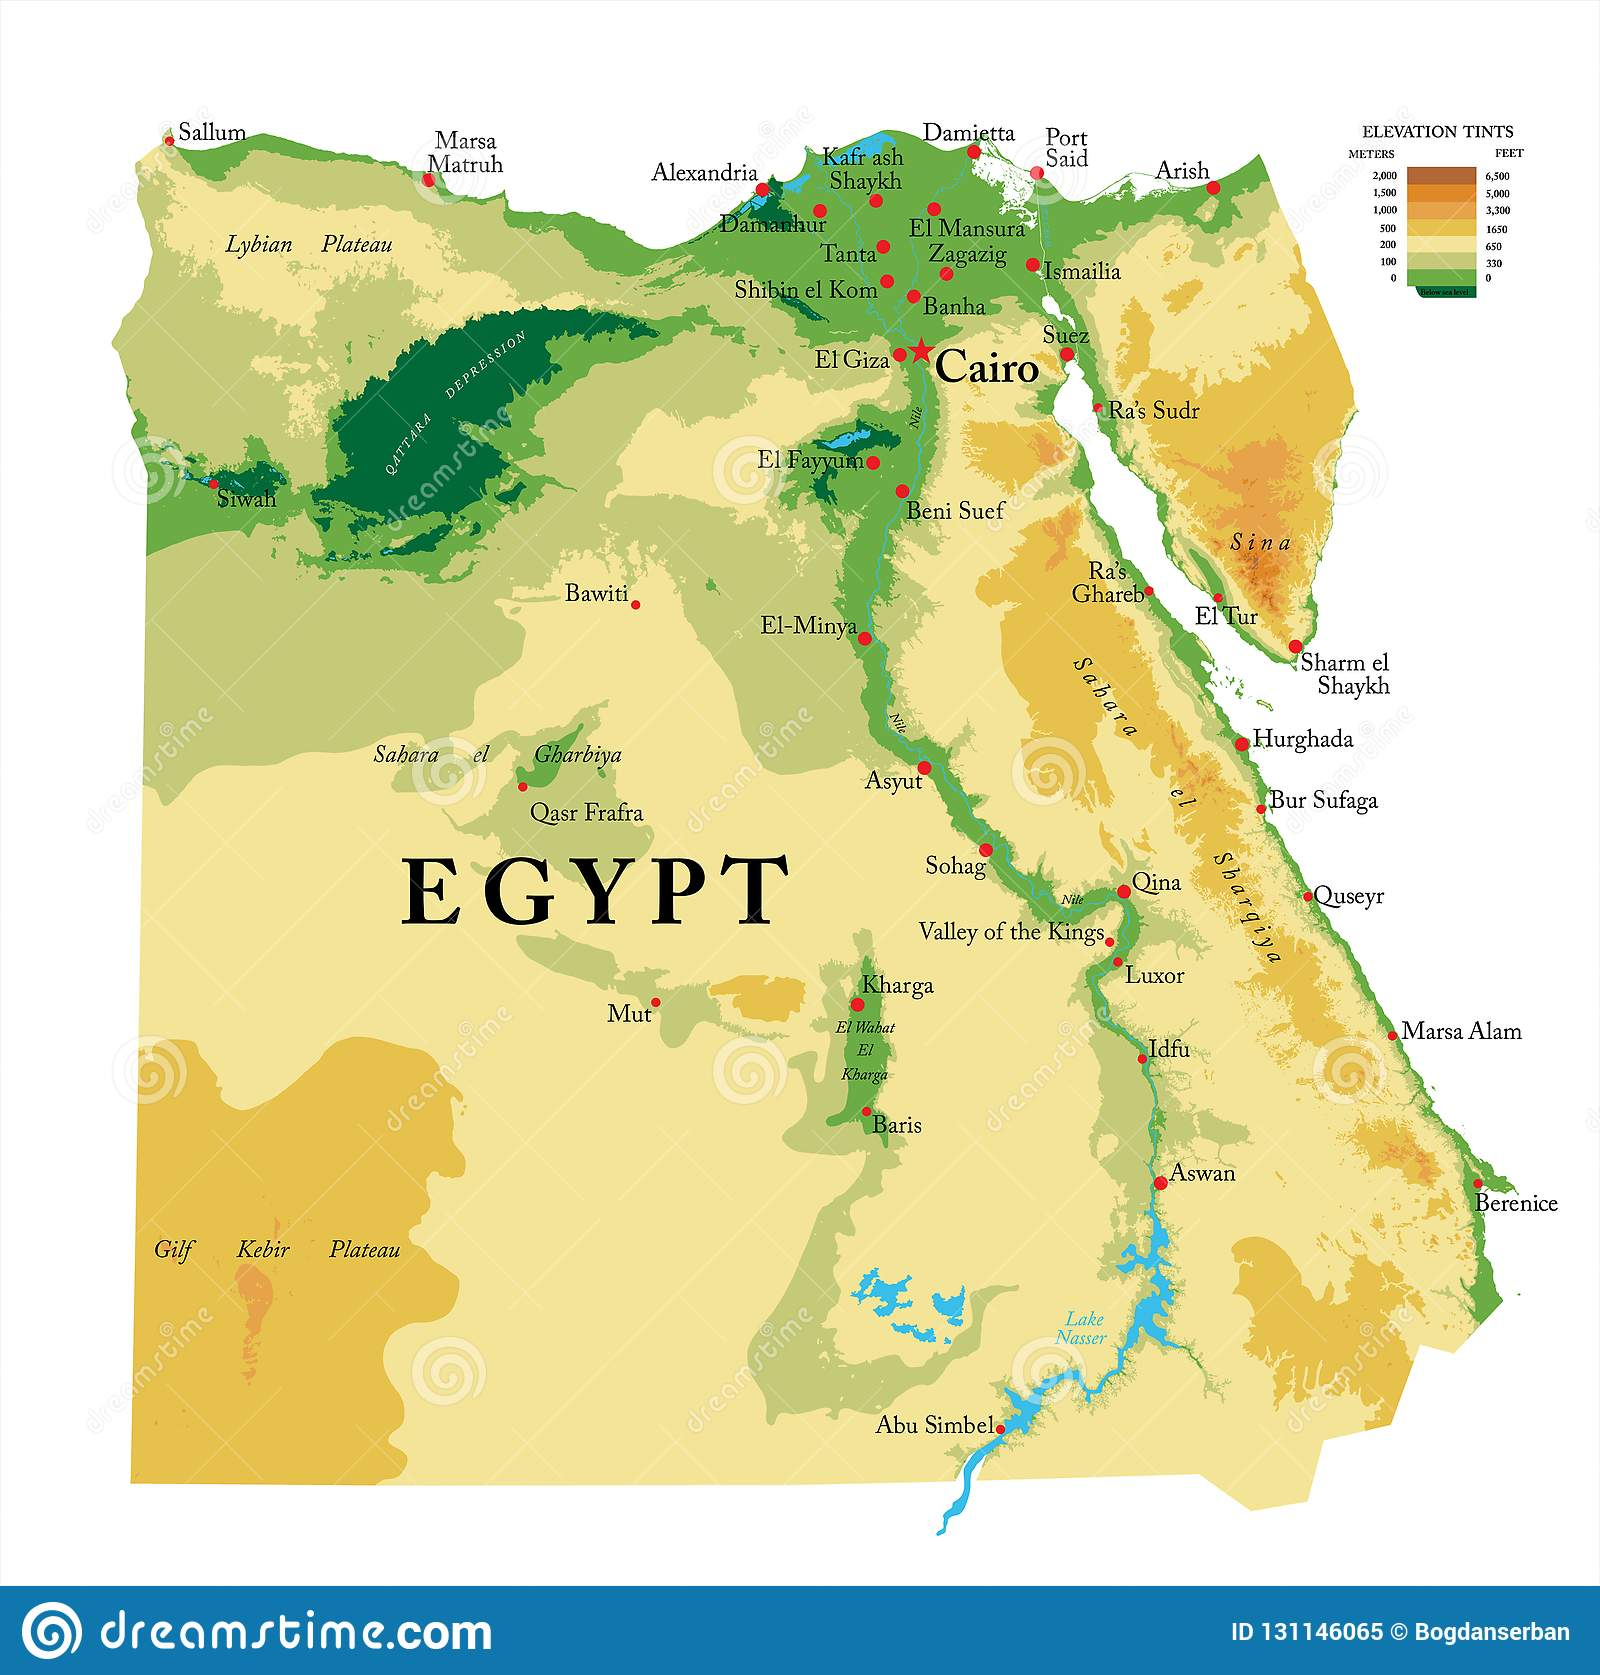 Egypt Physical Map Egypt physical map stock vector. Illustration of background